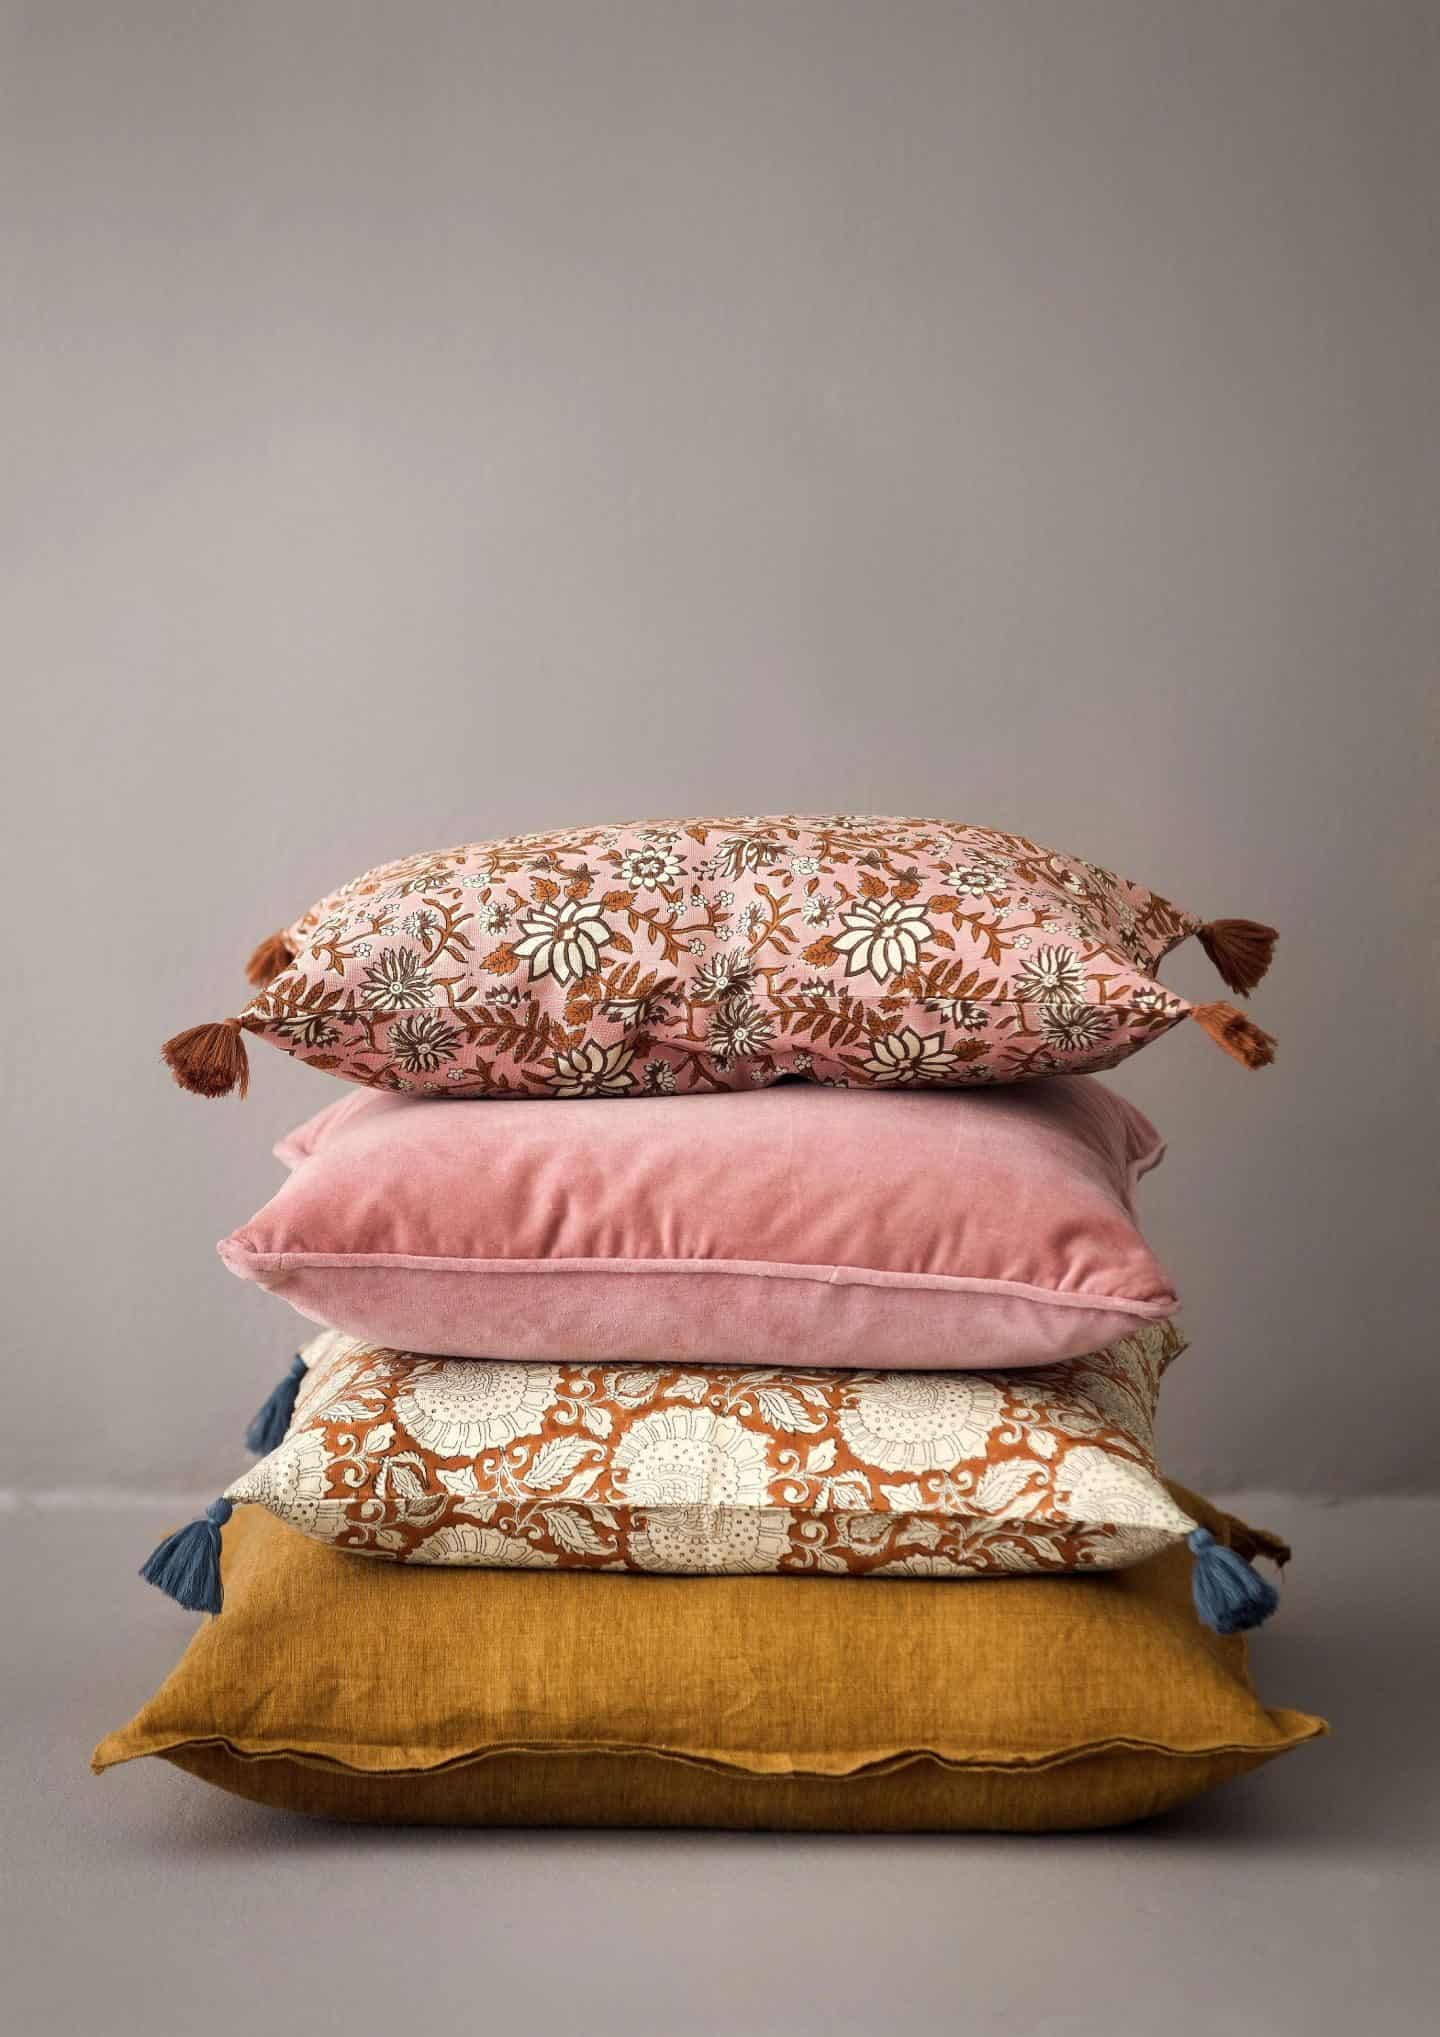 Shekabba danish Homewares - a stack of vintage cushions